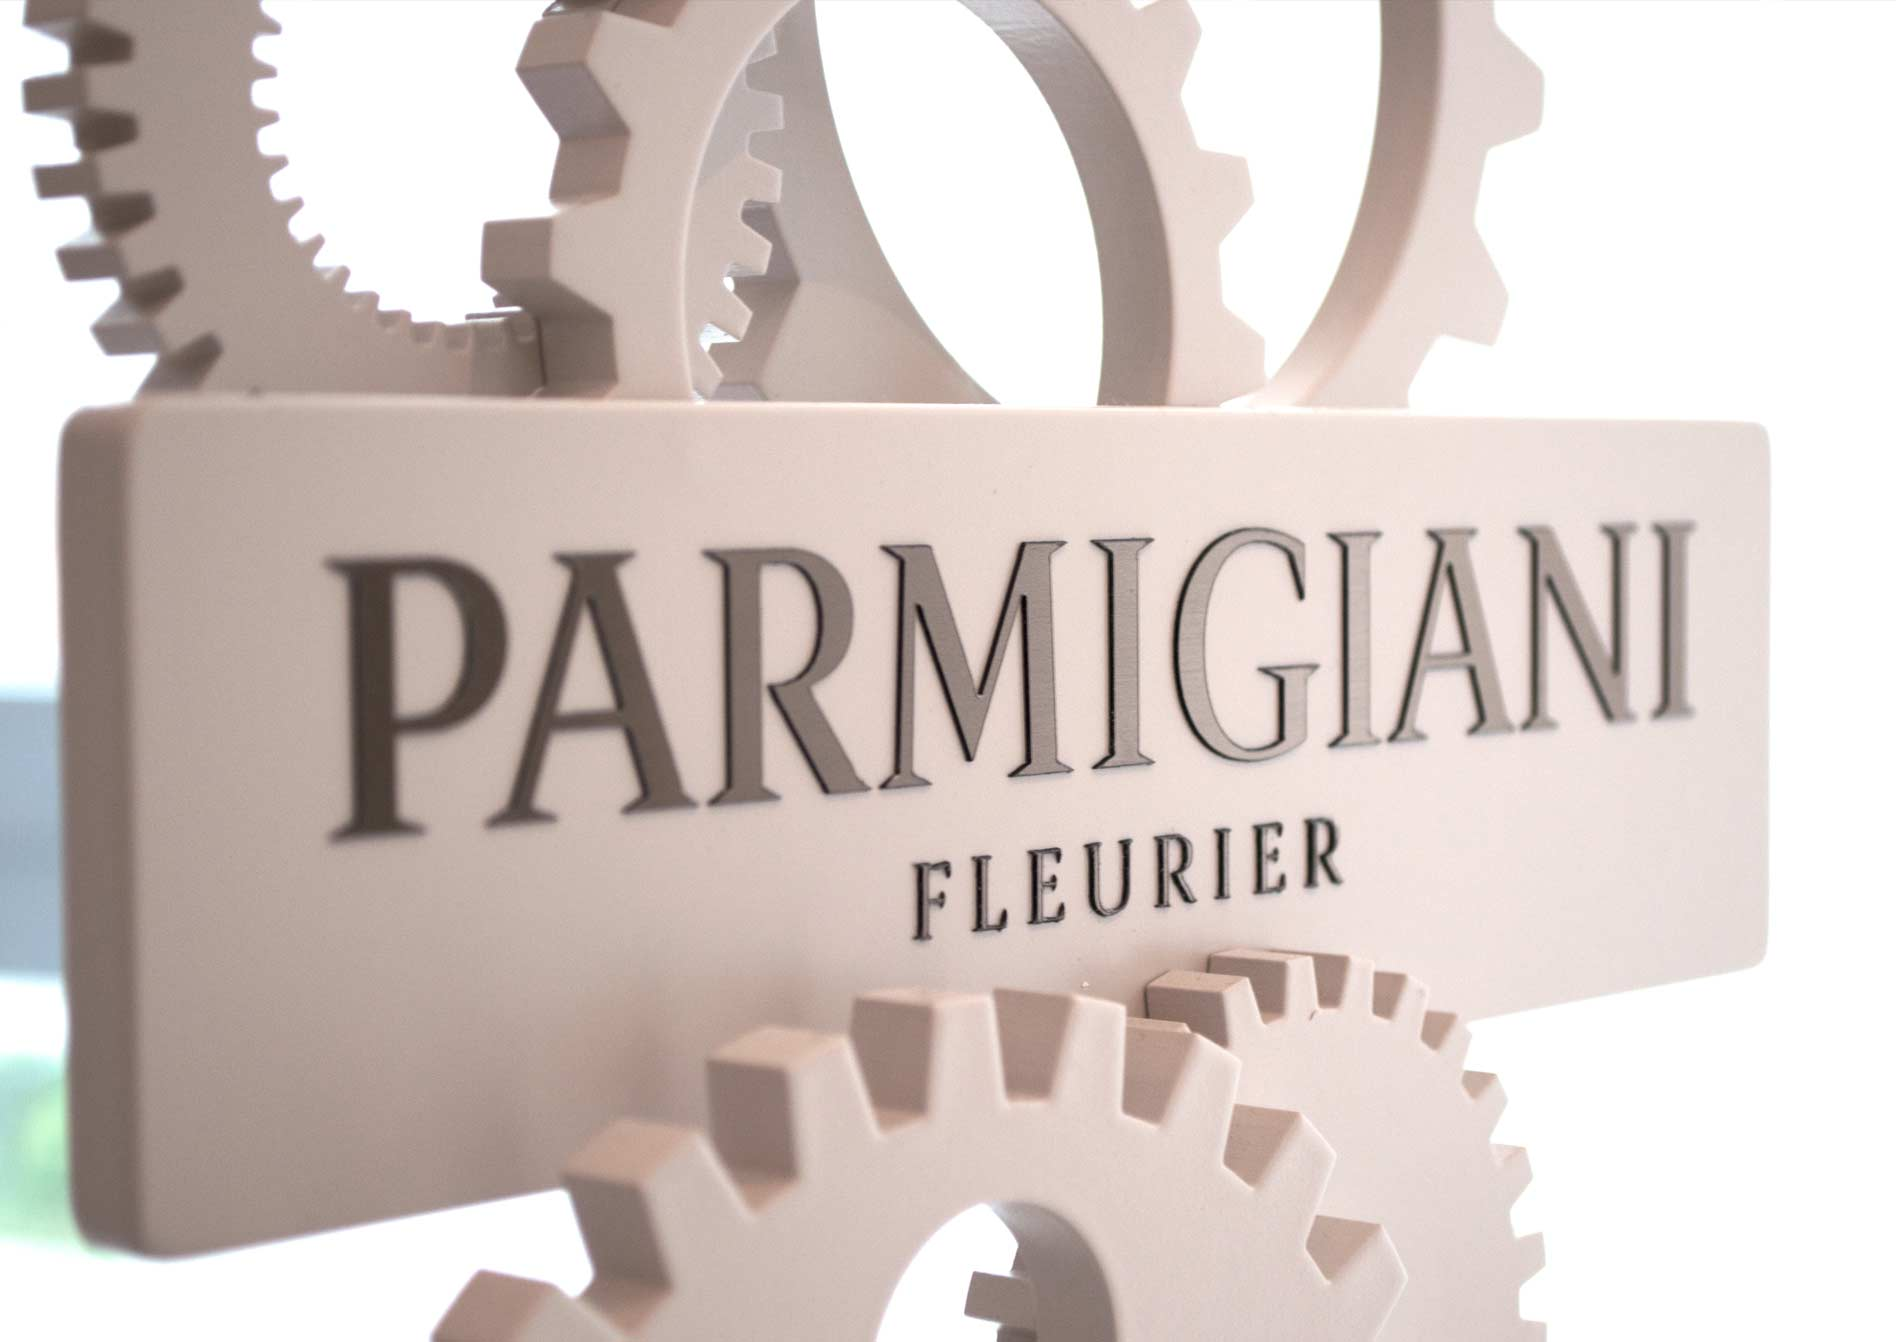 Parmigiani Fleurier Display